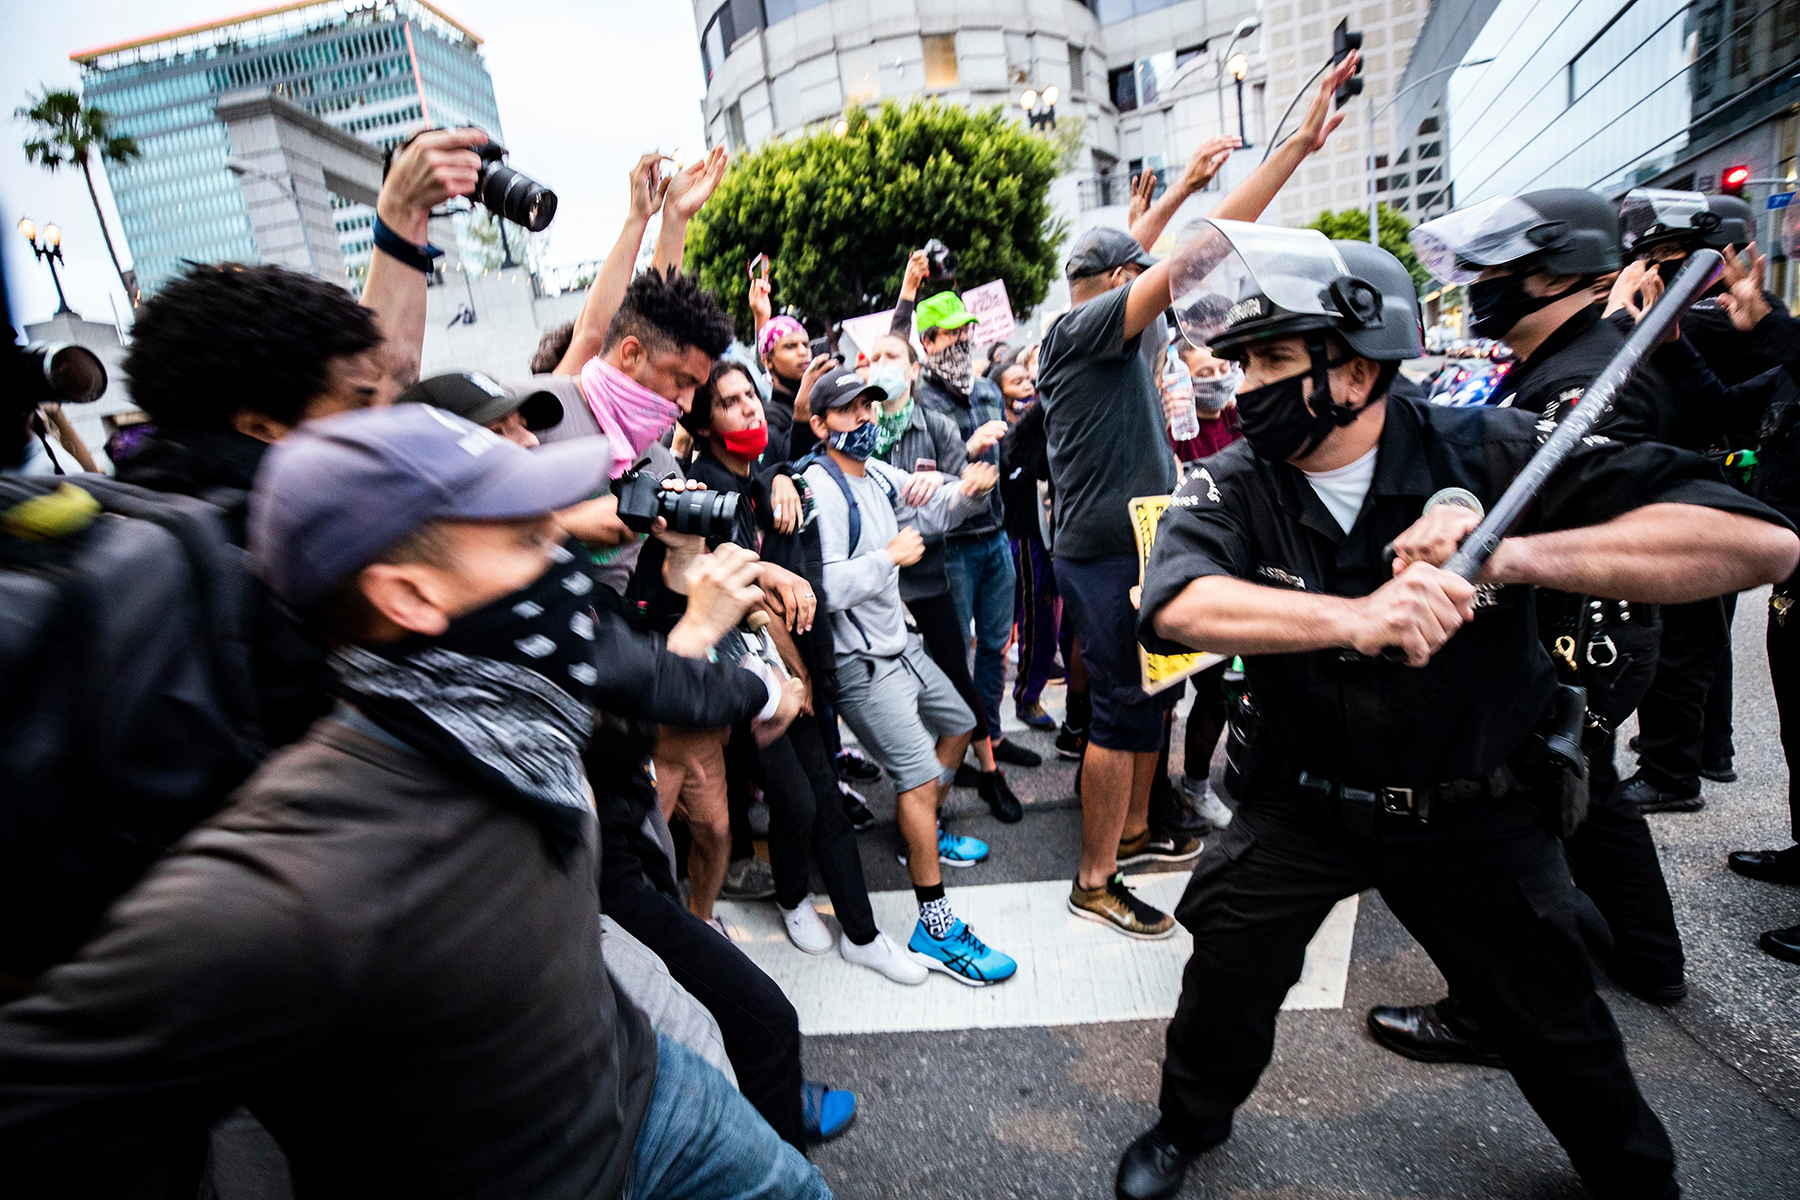 A police officer reacts as protesters try to break through a police blockade during protests over the Minnesota arrest of George Floyd, who later died in police custody, in Los Angeles, California, USA, 29 May 2020. A bystander's video posted online on 25 May, appeared to show George Floyd, 46, pleading with arresting officers that he couldn't breathe as an officer knelt on his neck. The unarmed black man later died in police custody. On 29 May, Hennepin County Attorney Mike Freeman announced third degree murder charges against the Minneapolis police officer who killed George Floyd.Police abuse protest in wake of George Floyd death, in Los Angeles, USA - 29 May 2020